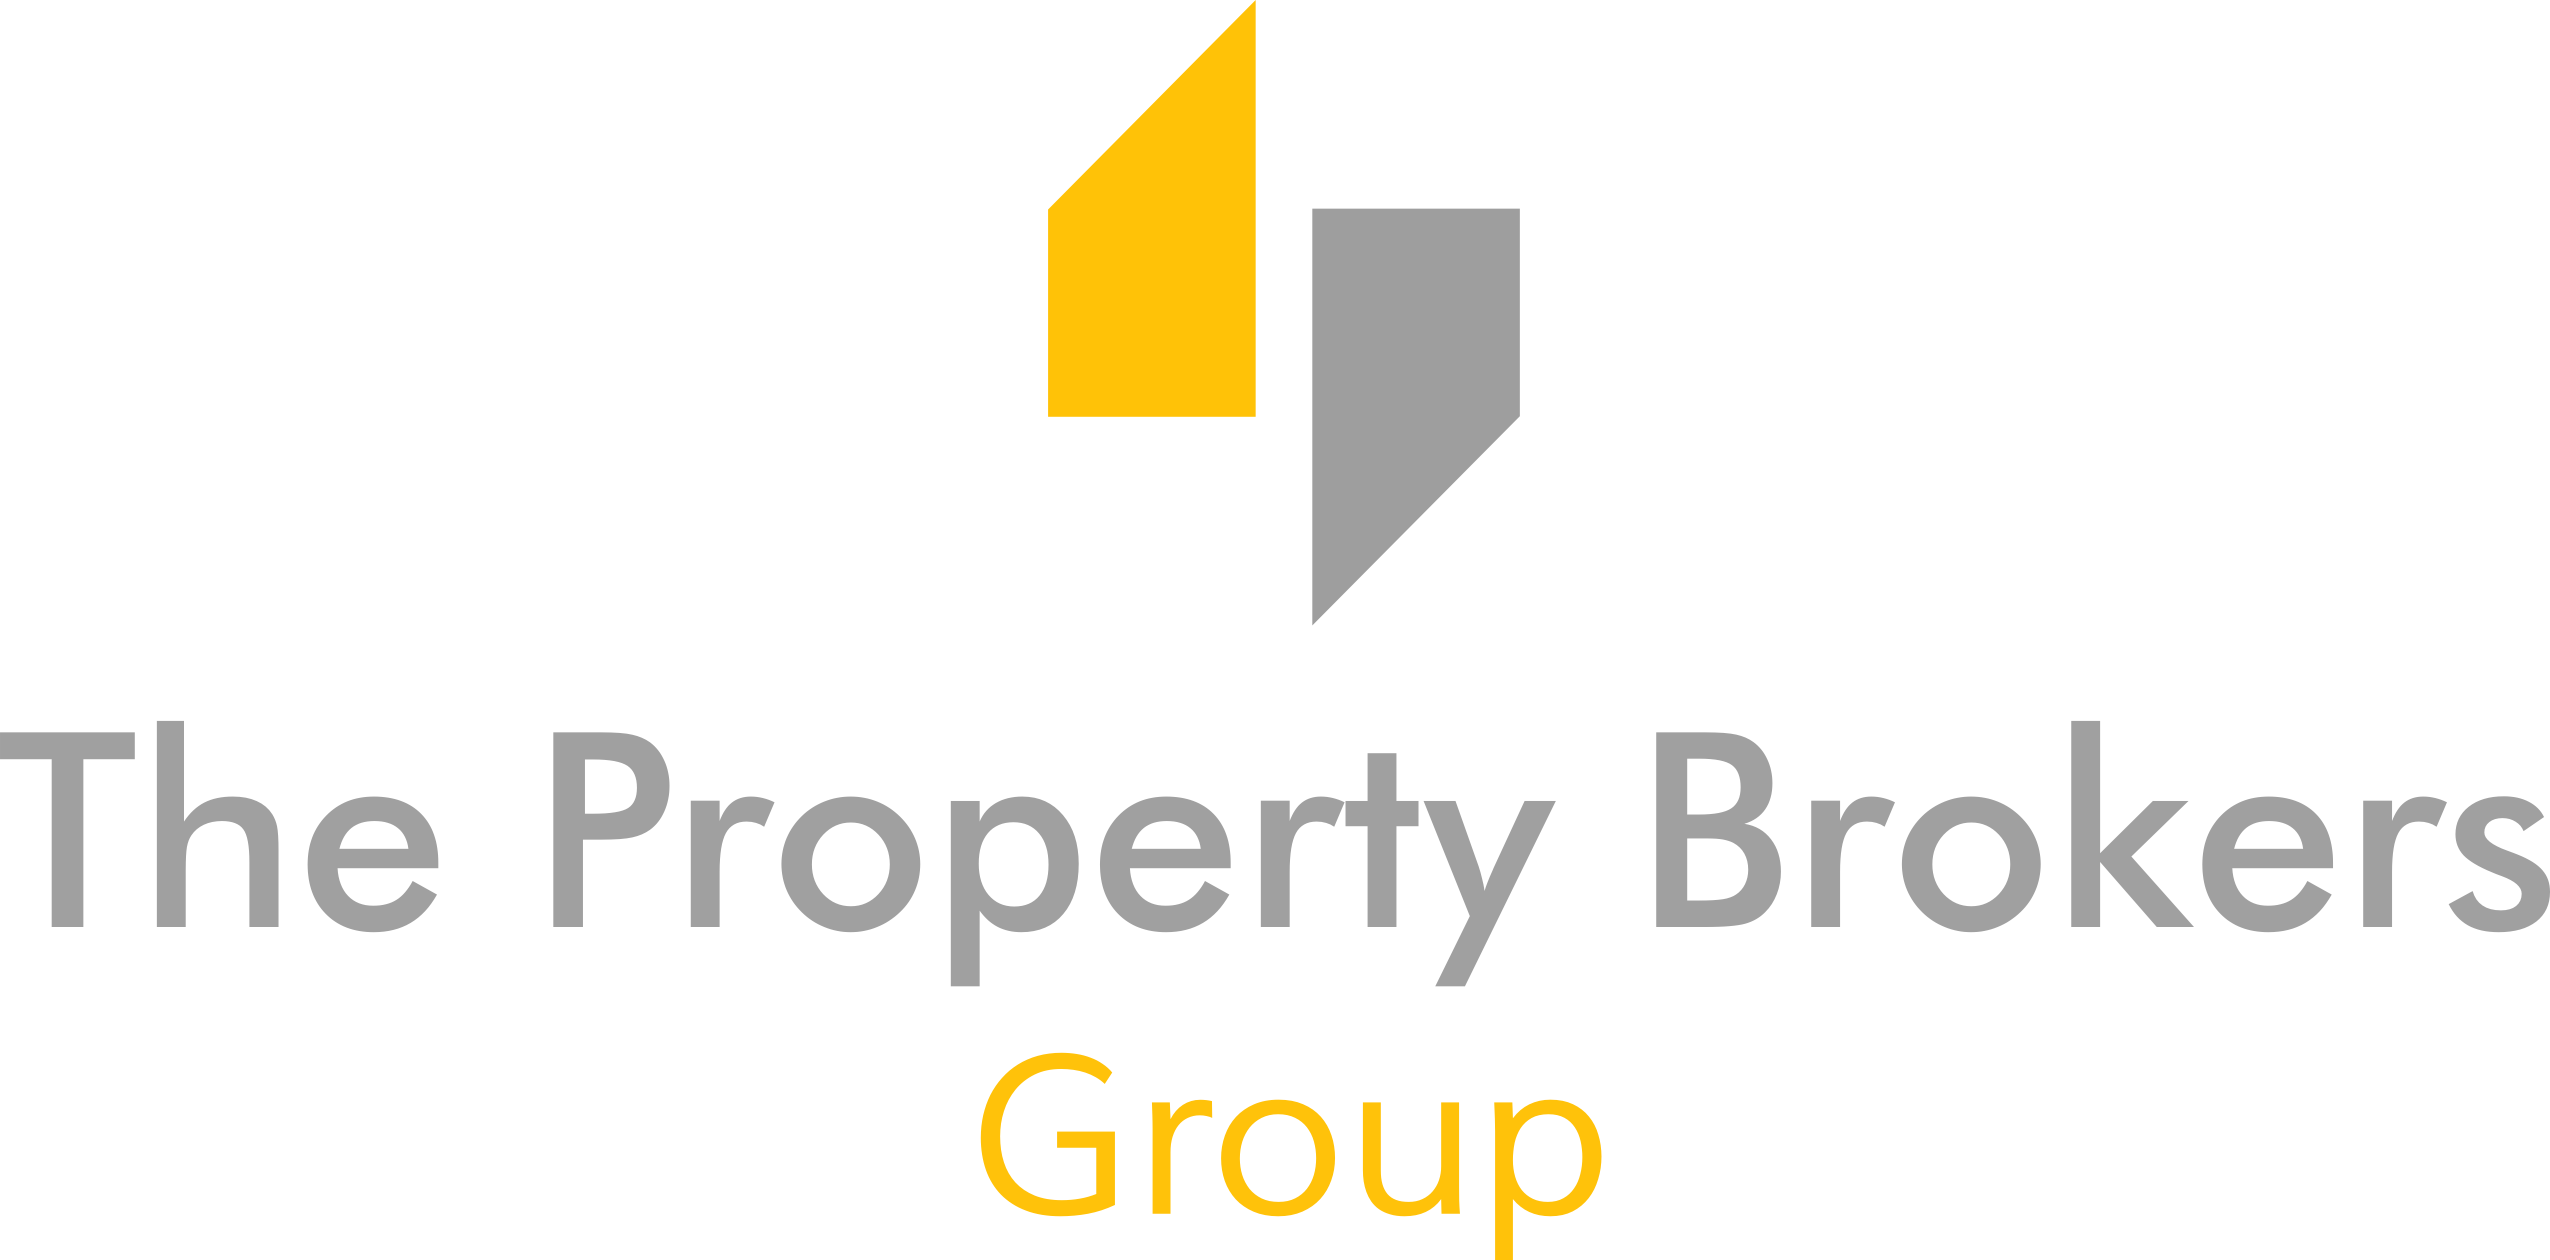 The Property Brokers Group